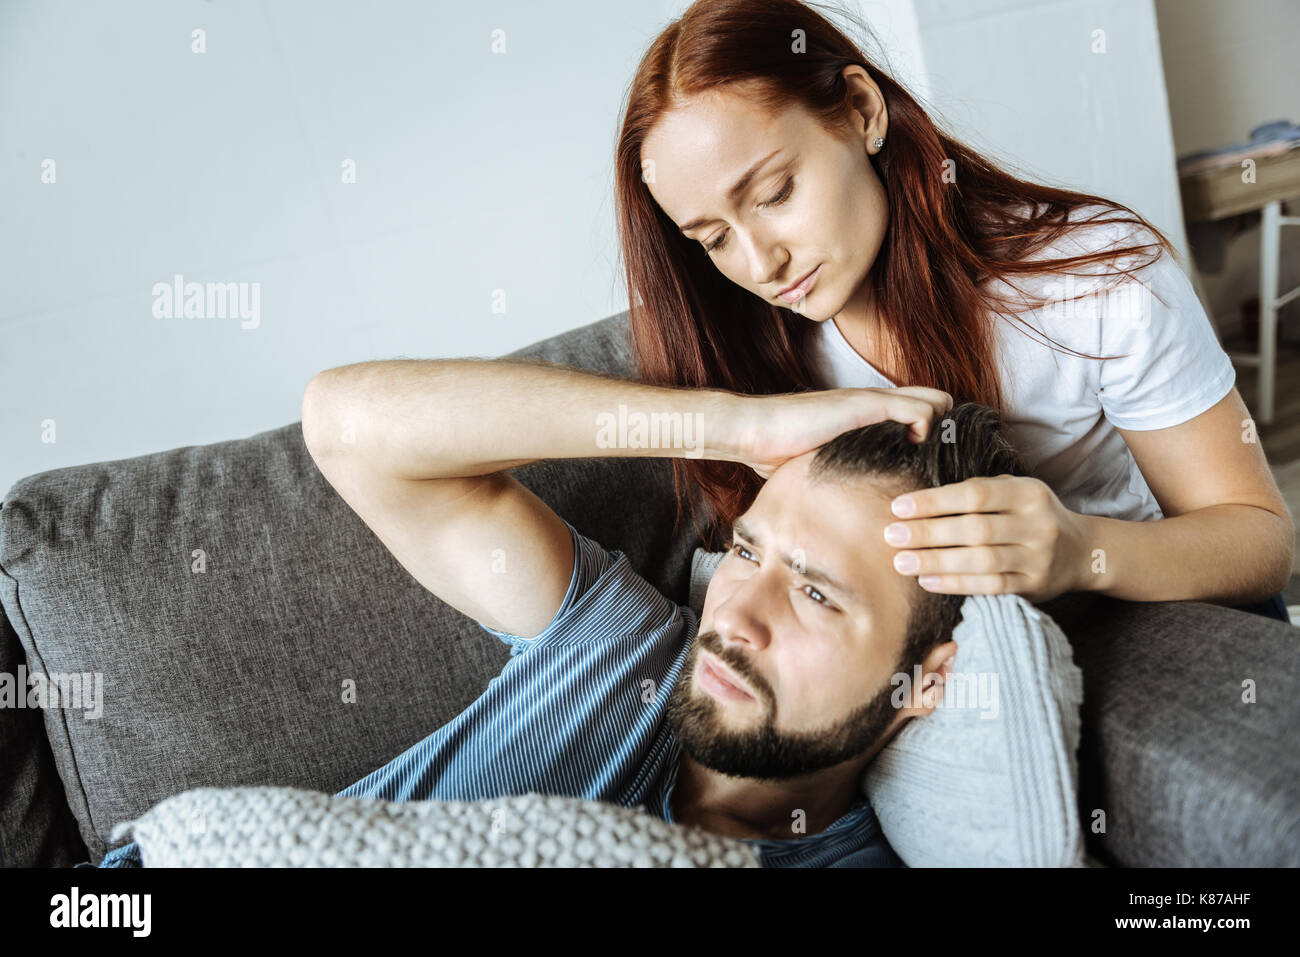 Nice unhappy woman looking at her boyfriend - Stock Image